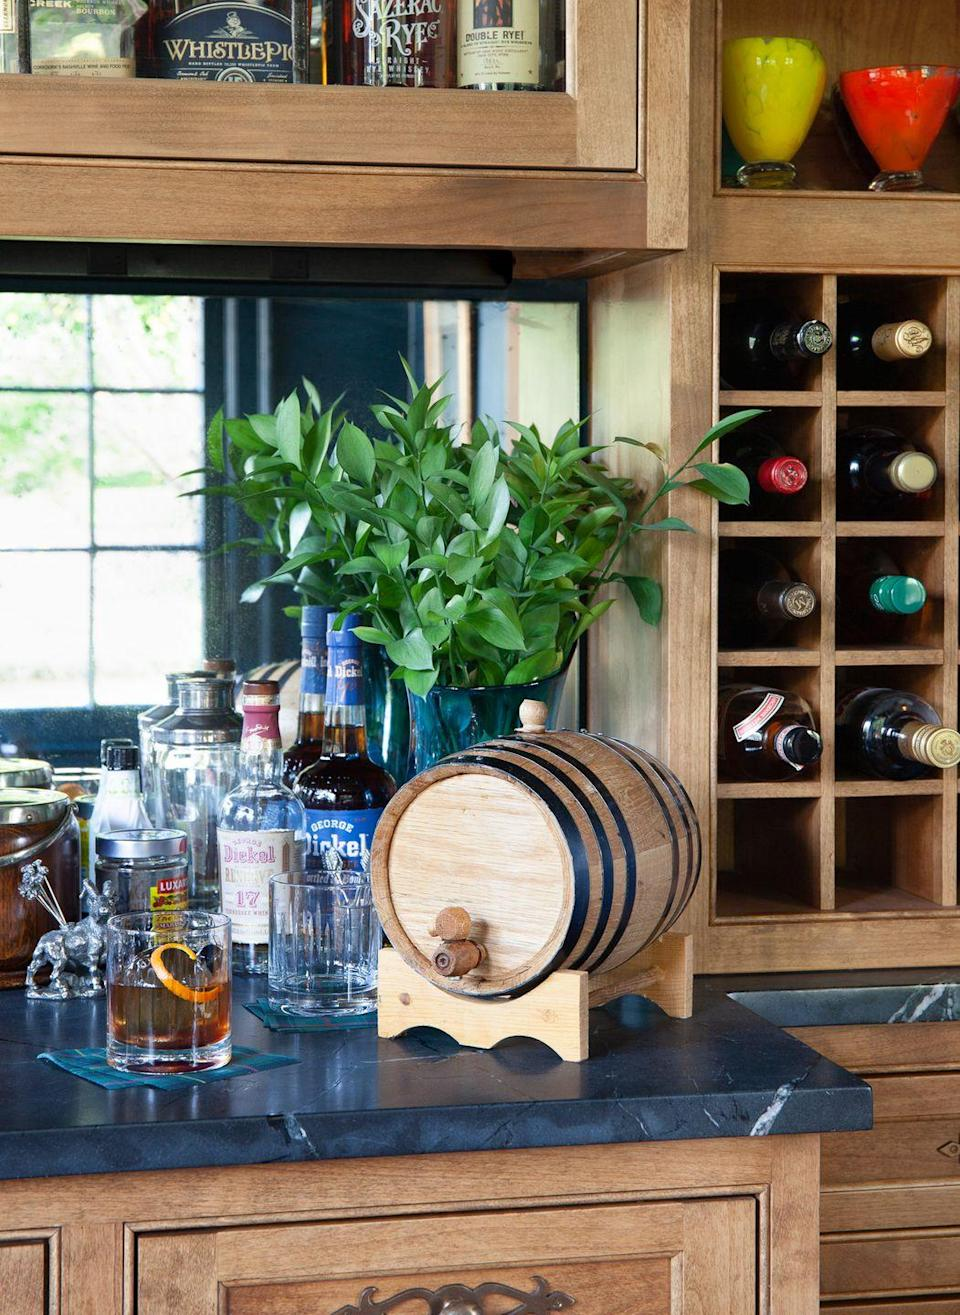 """<p>On Father's Day, it's always five o'clock somewhere. You'll need about a month's lead time to make this—or just get dad an aging barrel, and let him make his own!</p><p><strong><a href=""""https://www.countryliving.com/food-drinks/a34659441/nashattan-aged-manhattan-cocktail/"""" rel=""""nofollow noopener"""" target=""""_blank"""" data-ylk=""""slk:Get the recipe"""" class=""""link rapid-noclick-resp"""">Get the recipe</a>.</strong> </p>"""